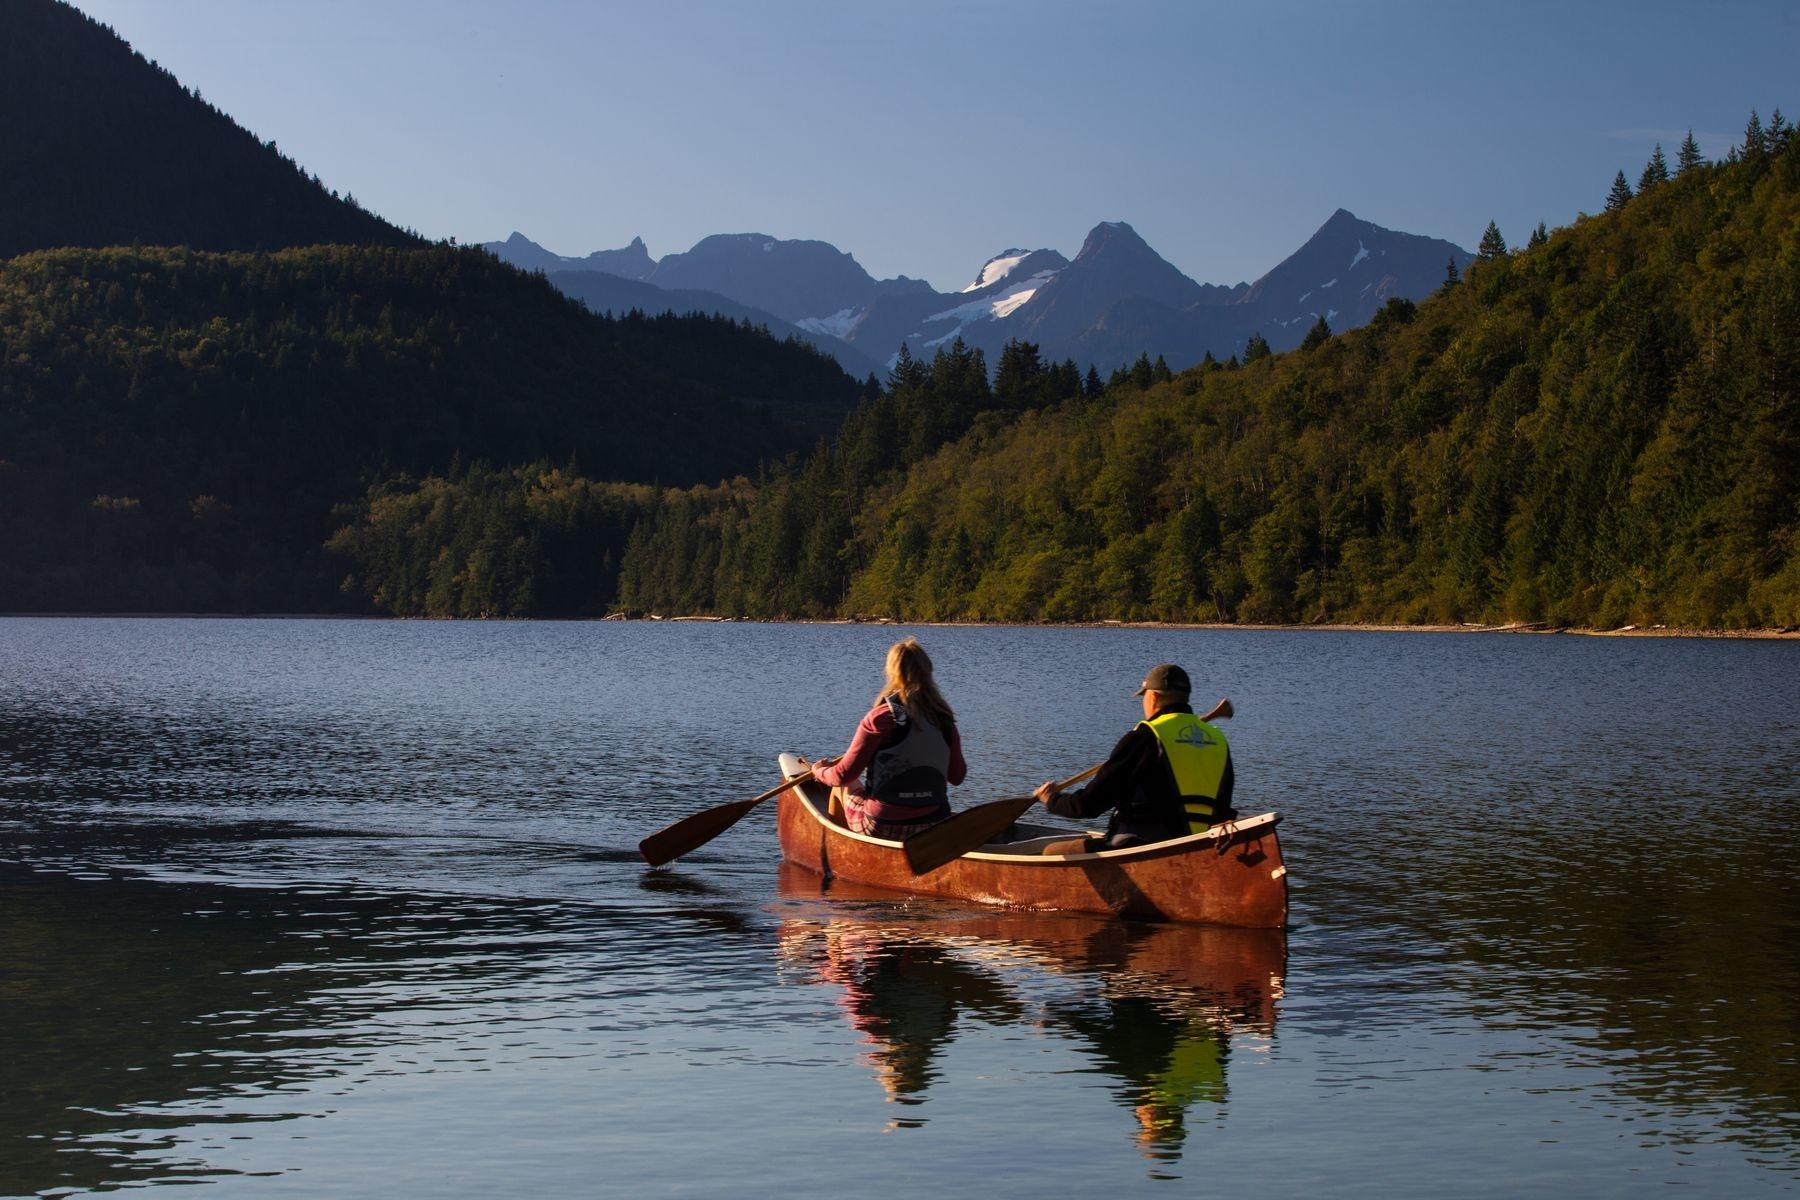 Two person canoe on lake with mountains in background